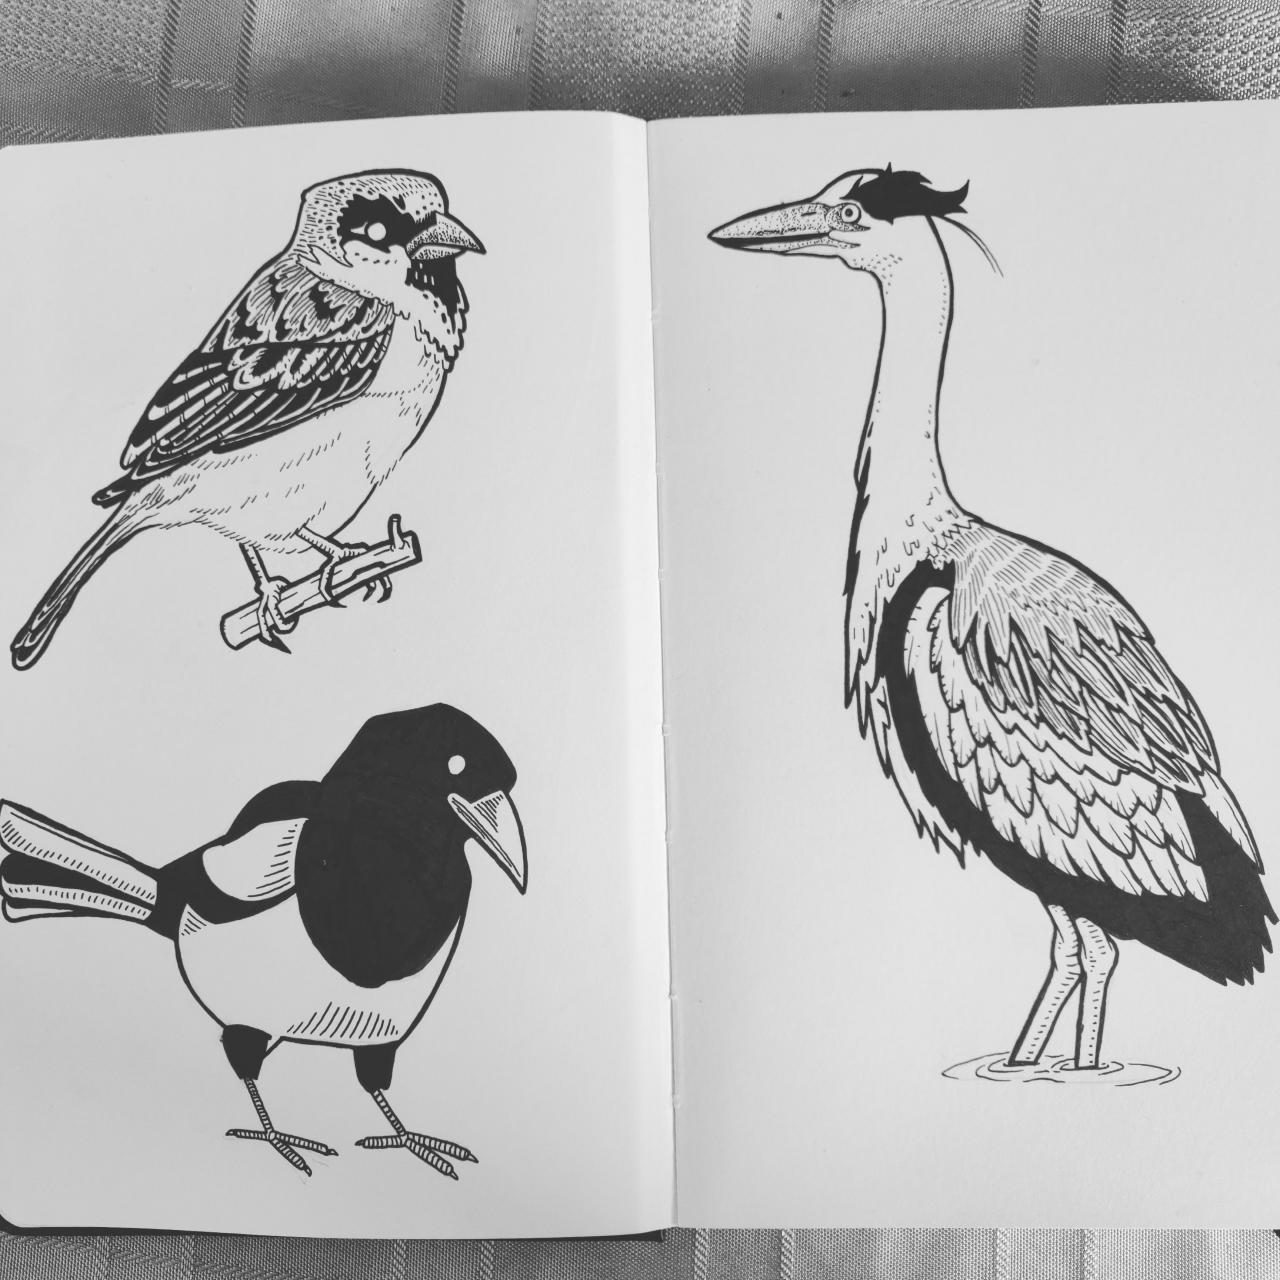 Some Designs Based on Local Birds